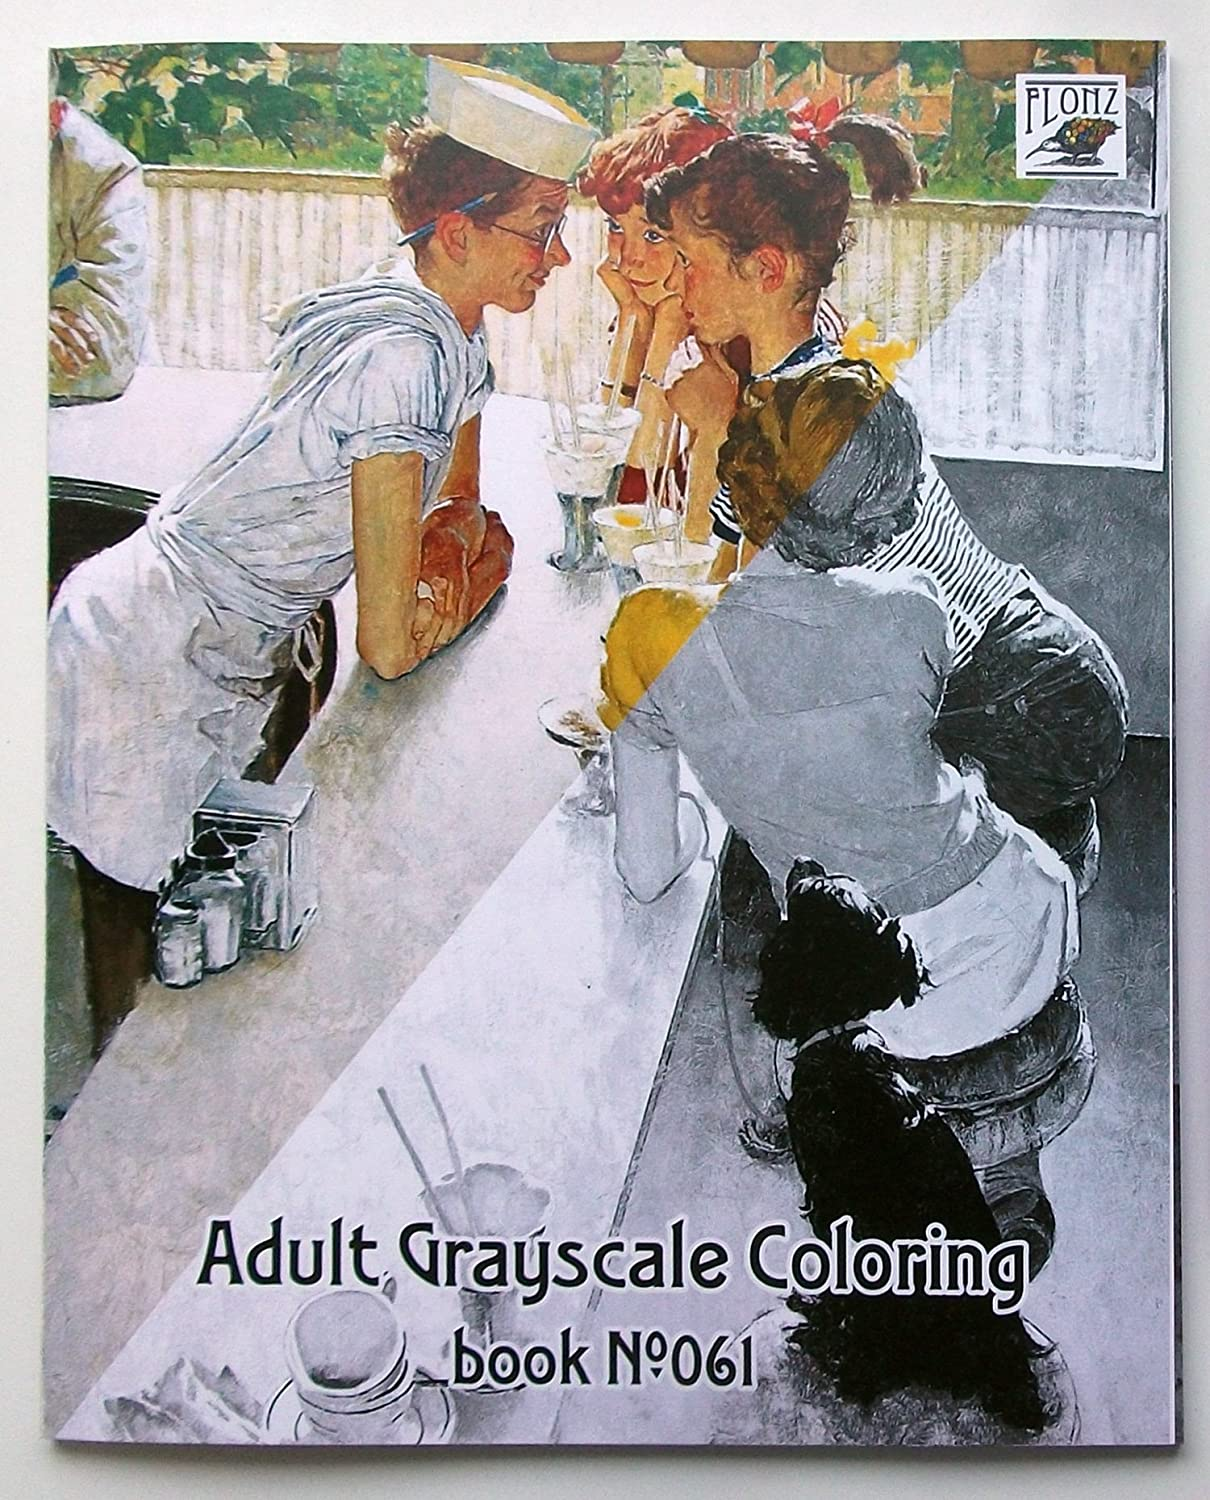 24 pages 8x11//A4 Adult Coloring Book Children Everyday Life by Norman Rockwell FLONZ Vintage Designs for Grayscale Coloring